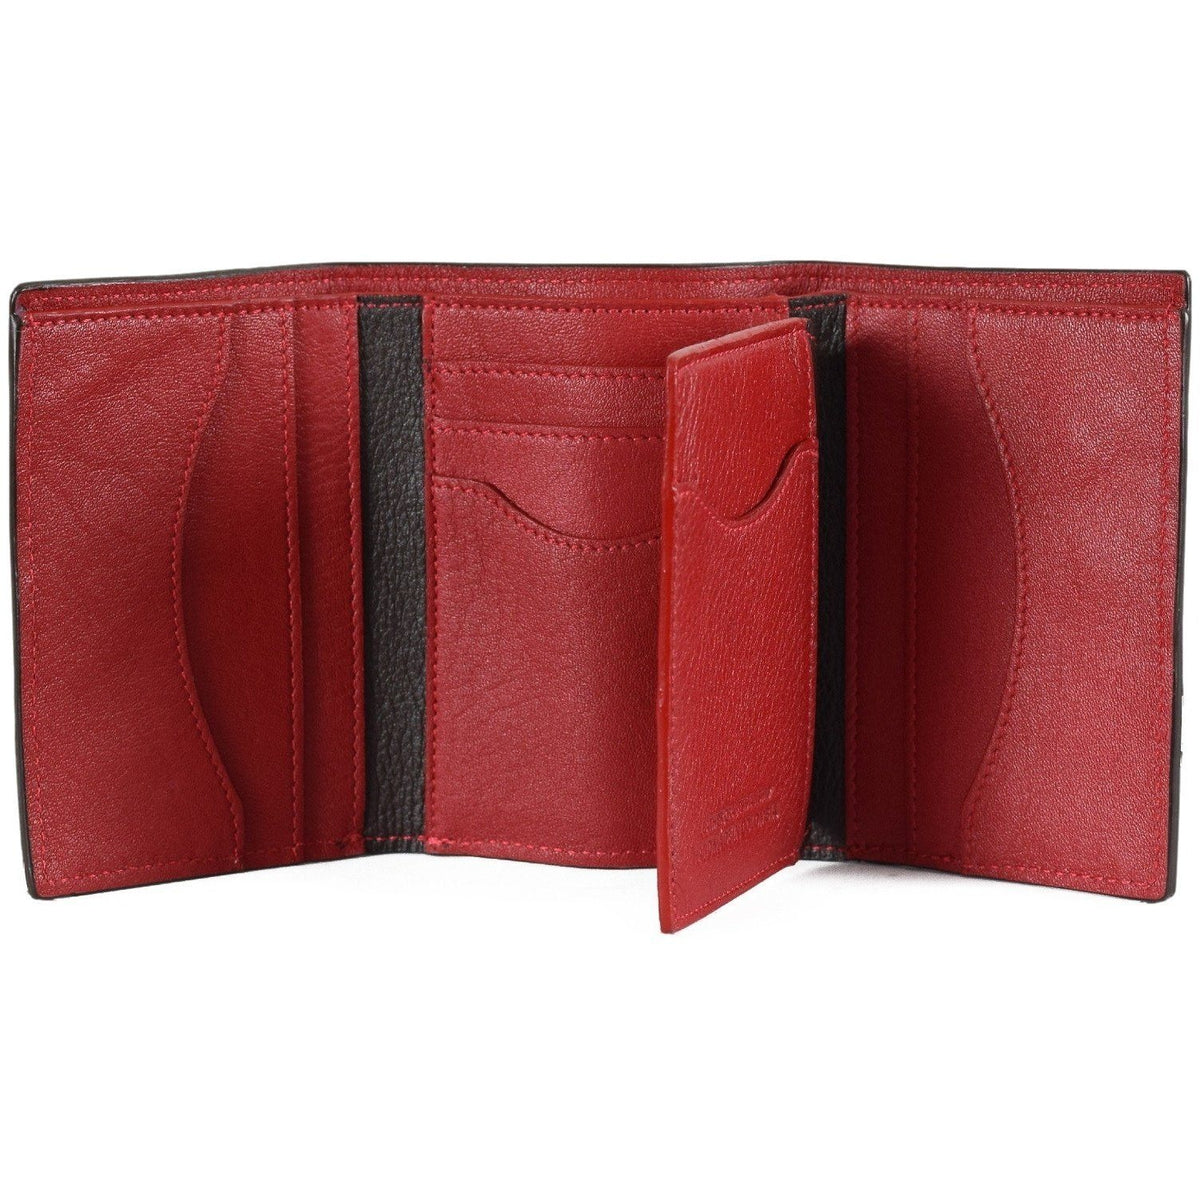 Cosmos Tri-fold Wallet, Wallet | LAND Leather